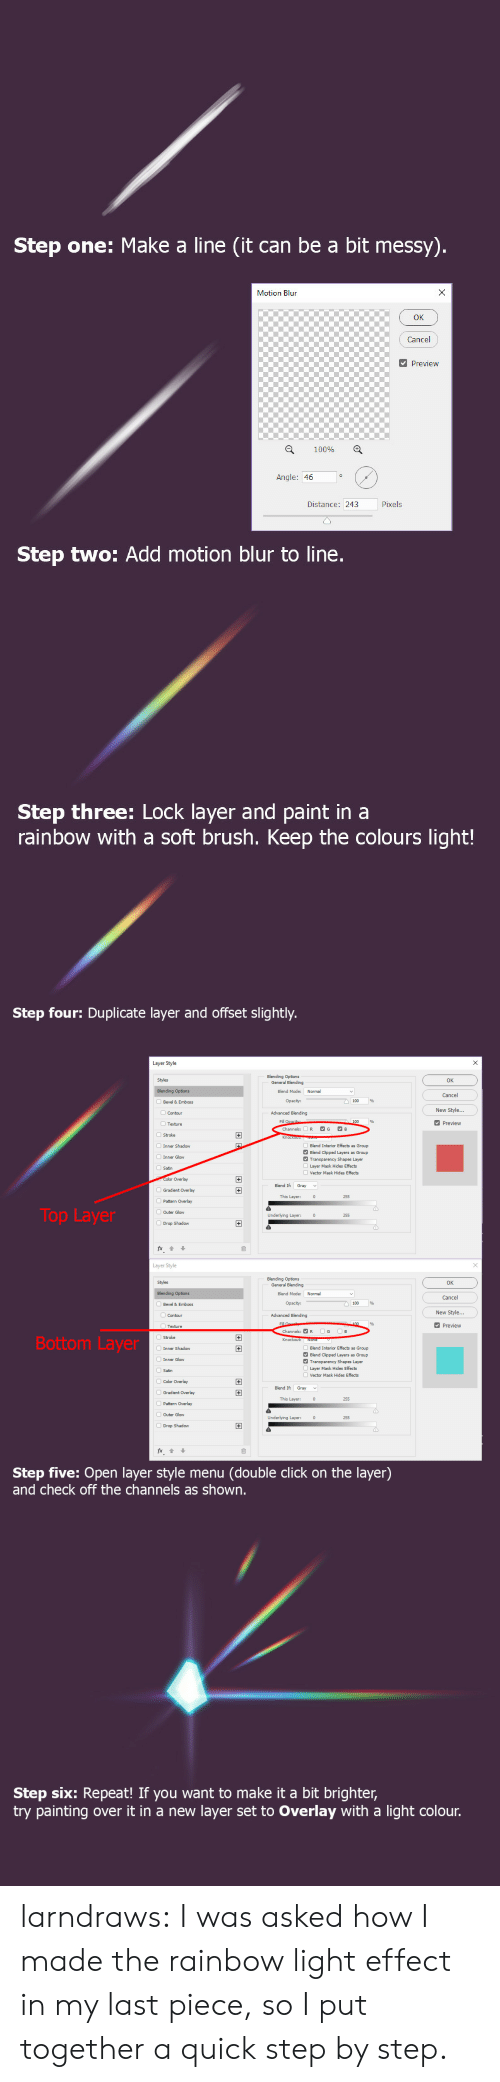 Layers: Step one: Make a line (it can be a bit messy).  X  Motion Blun  Cancel  Preview  100%  Angle: 46  Pixels  Distance: 243  Step two: Add motion blur to line.  Step three: Lock layer and paint in a  rainbow with a soft brush. Keep the colours light!   Step four: Duplicate layer and offset slightly.  Layer Style  Blending Options  General Blending  Styles  OK  Blending Options  Blend Mode:  Normal  Cancel  Opacity:  Bevel & Emboss  New Style...  Advanced Blending  Contour  Fill Opacib  Channels:  Preview  Texture  G  B  R  +  Stroke  Inner Shadow  Blend Interior Effects  Blend Clipped Layers  Transparency Shapes Layer  s Group  Group  Inner Glow  Layer Mask Hides Effects  Satin  Vector Mask Hides Effects  Color Overlay  +  Blend If  Gray  Gradient Overlay  This Layer:  255  Pattern Overlay  Top Layer  OOuter Glow  Underlying Layer:  255  Drop Shadow  Layer Style  Blending Options  General Blending  Styles  OK  Normal  Blending Options  Blend Mode:  Cancel  Opacity:  Bevel & Emboss  New Style...  Advanced Blending  Contour  Fill  100  Preview  Texture  G  B  Channels: R  Bottom Layer  Knockout: None  Inner Shadow  Blend Interior Effects  Blend Clipped Layers  Transparency Shapes Layer  Layer Mask Hides Effects  +  s Group  Group  Inner Glow  Satin  Vector Mask Hides Effects  Color Overlay  +  Blend If  Gradient Overlay  +  This Layer:  255  Pattern Overlay  Outer Glow  Underlying Layer:  255  Drop Shadow  fx  Step five: Open layer style menu  and check off the channels as shown.  (double click on the layer)   Step six: Repeat! If you want to make it a bit brighter,  try painting  layer set to Overlay with a light colour.  over it in a new larndraws:  I was asked how I made the rainbow light effect in my last piece, so I put together a quick step by step.